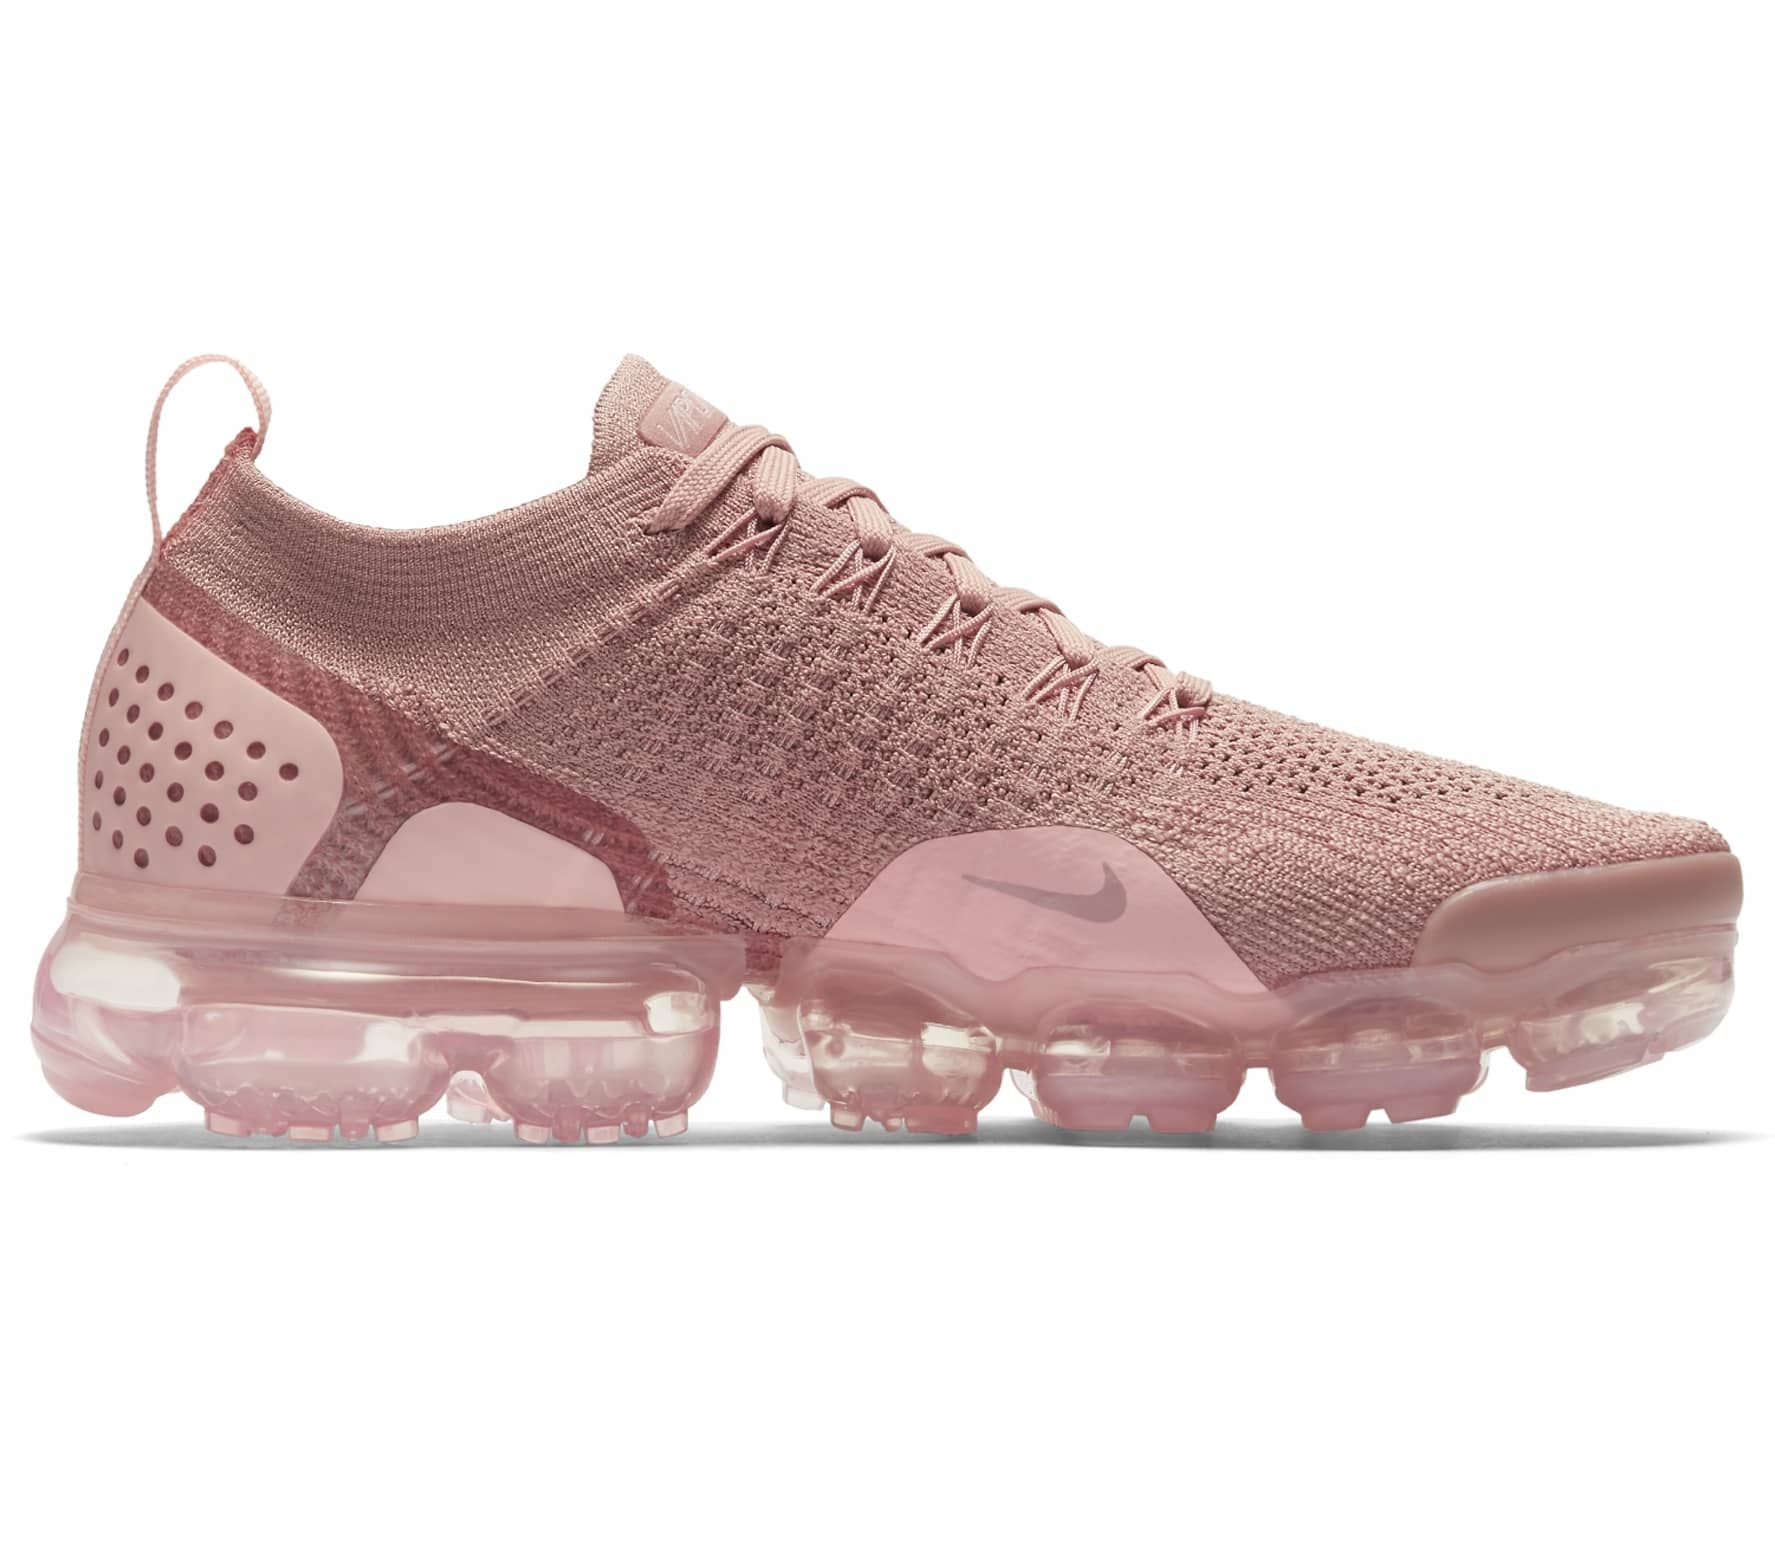 5e7d81b821ad8 Nike - Air Vapor Max Flyknit 2 women s running shoes (pink) - buy it ...